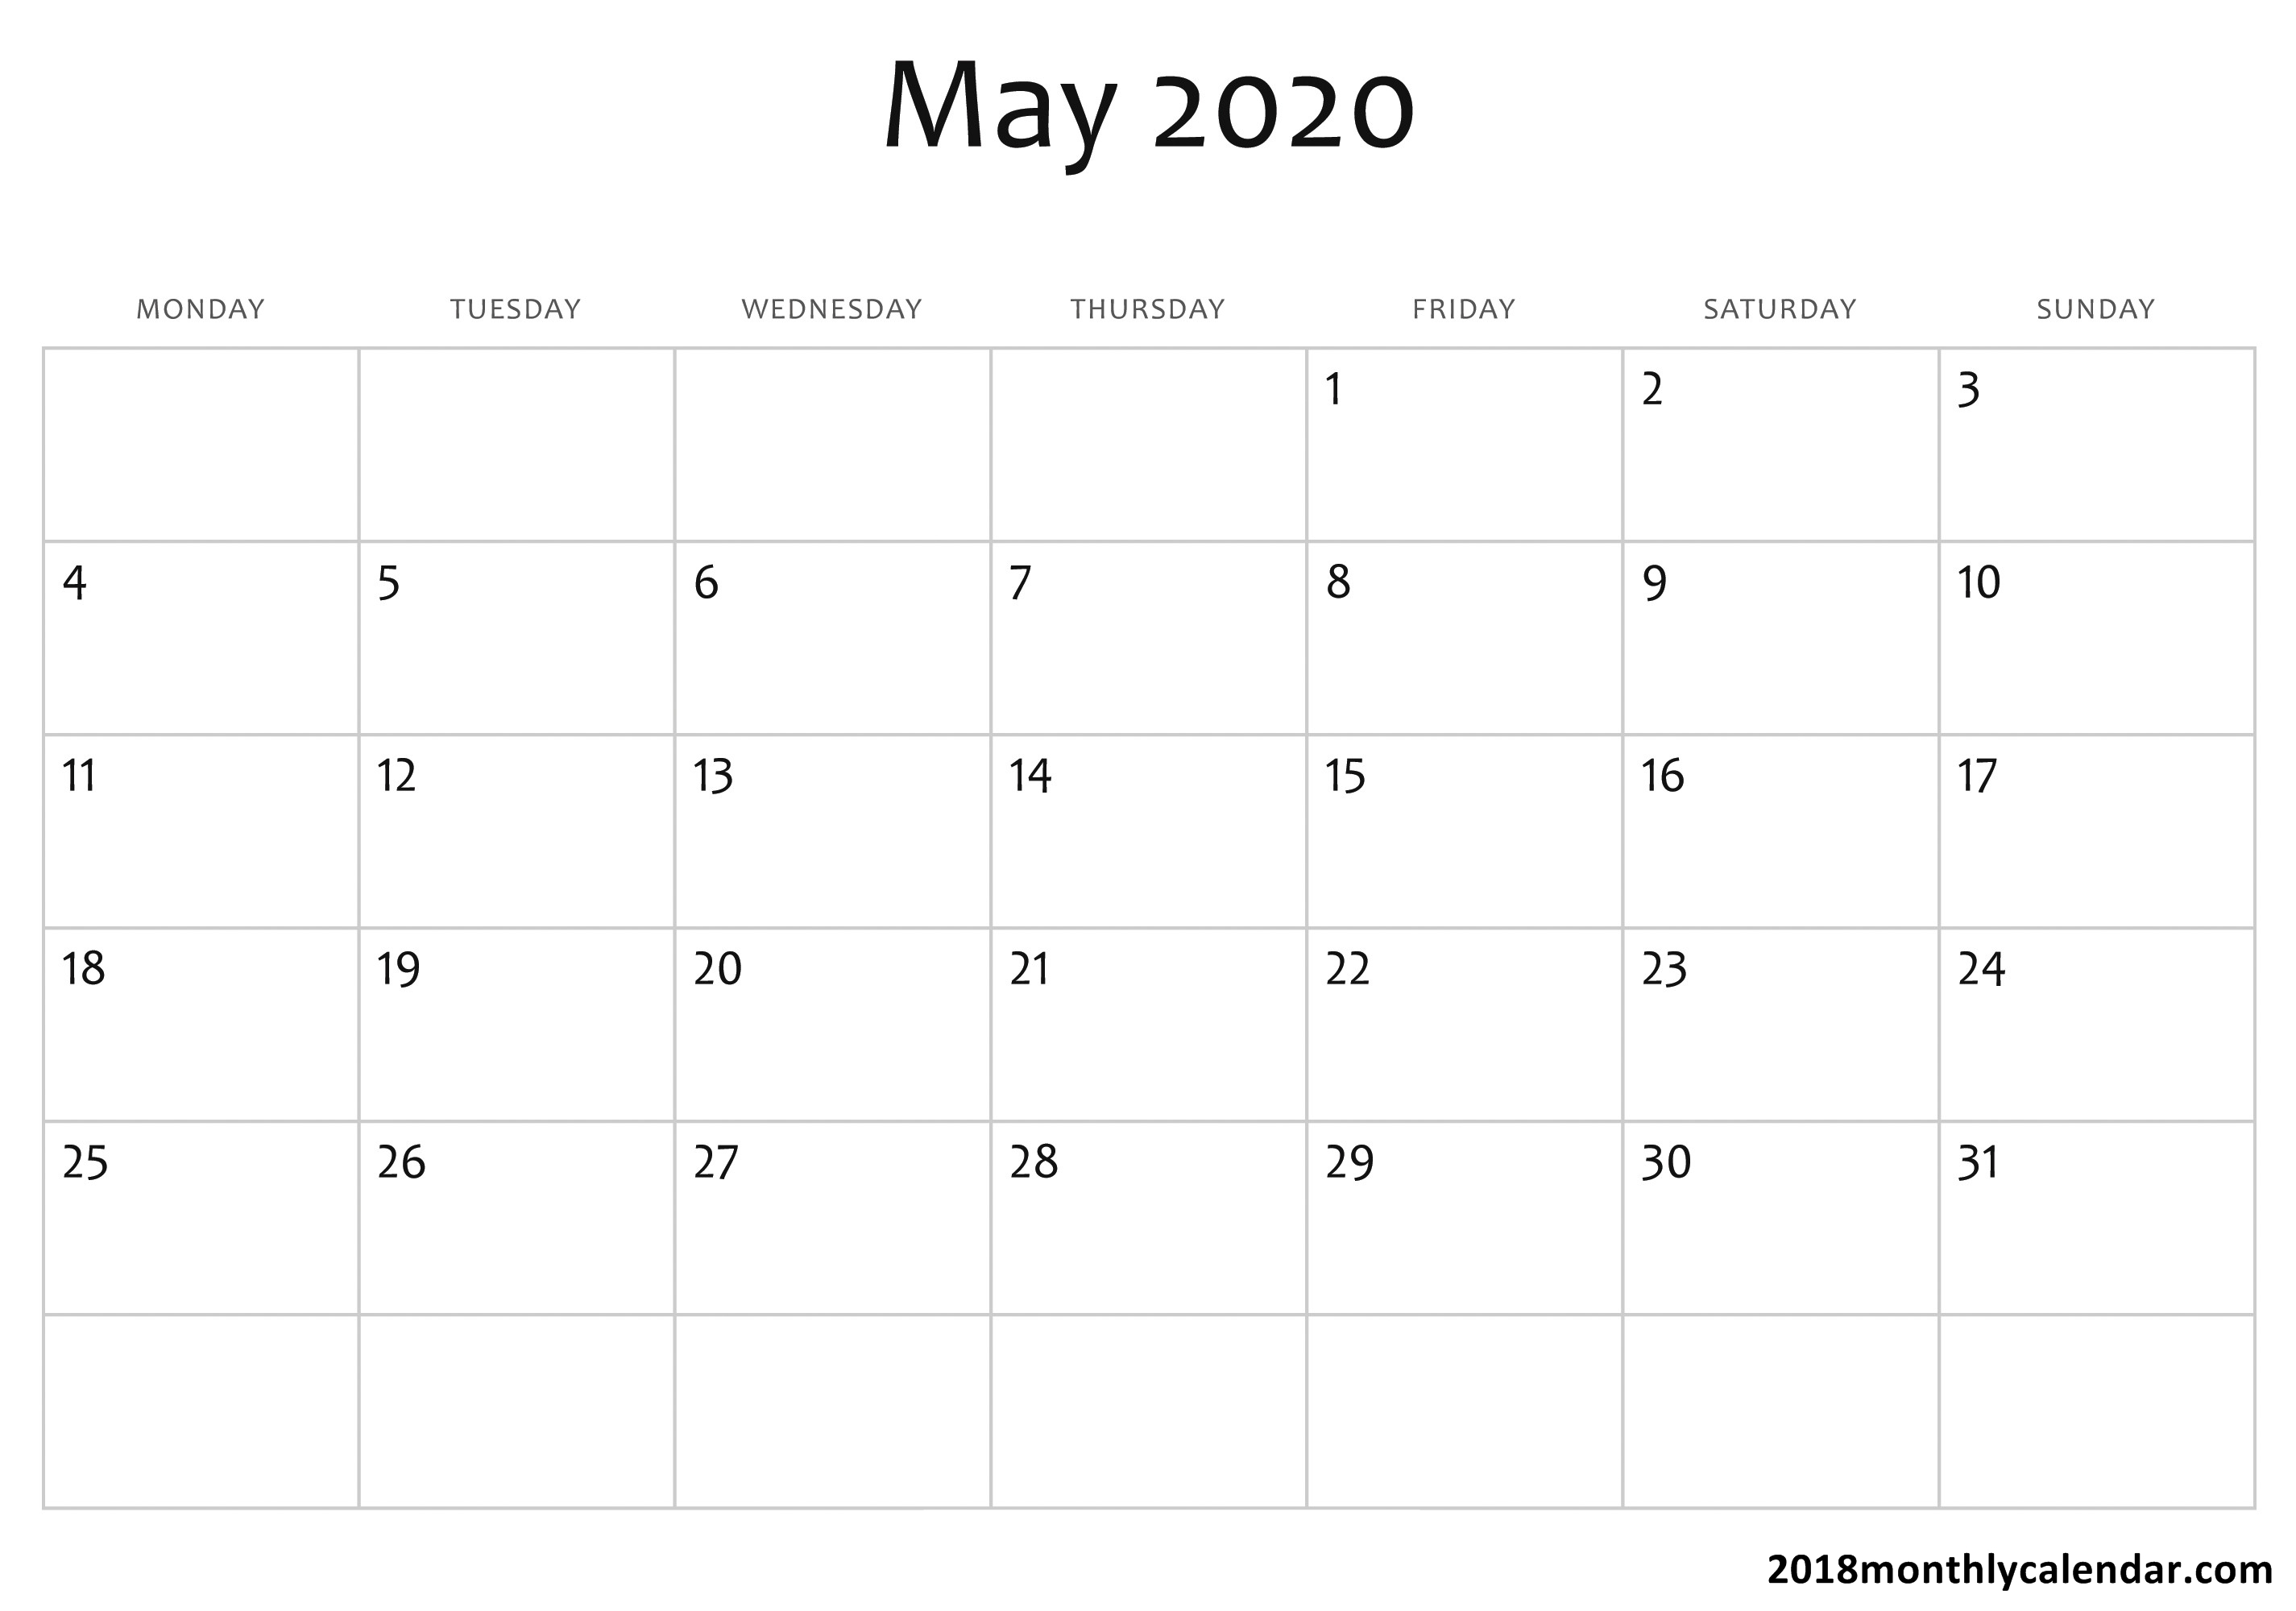 Download May 2020 Calendar – Blank & Editable